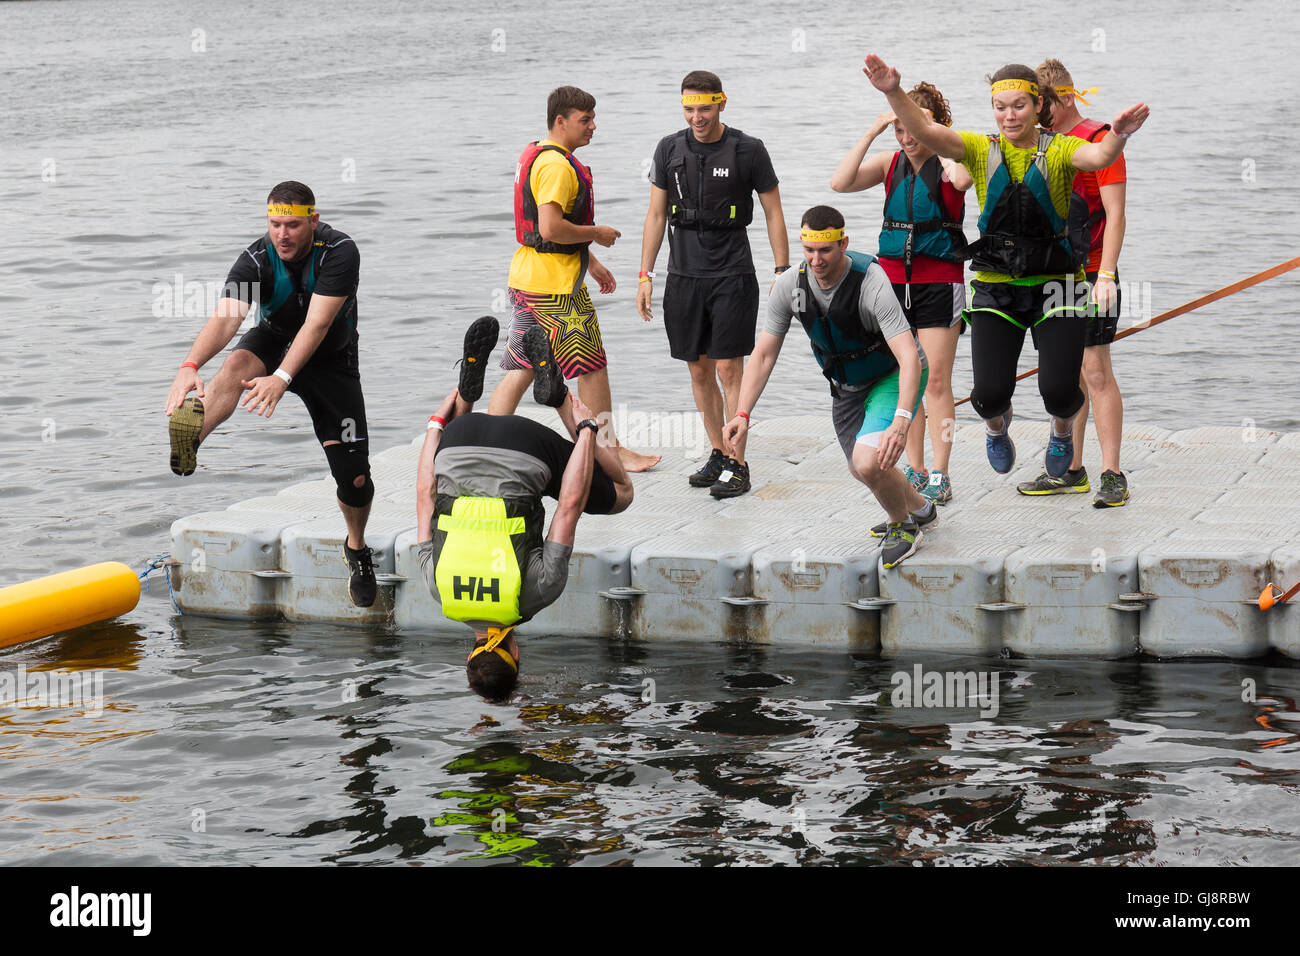 London, UK. 13th Aug, 2016. Contestants take part in the London River Rat Race at the Royal Victoria Docks on the - Stock Image